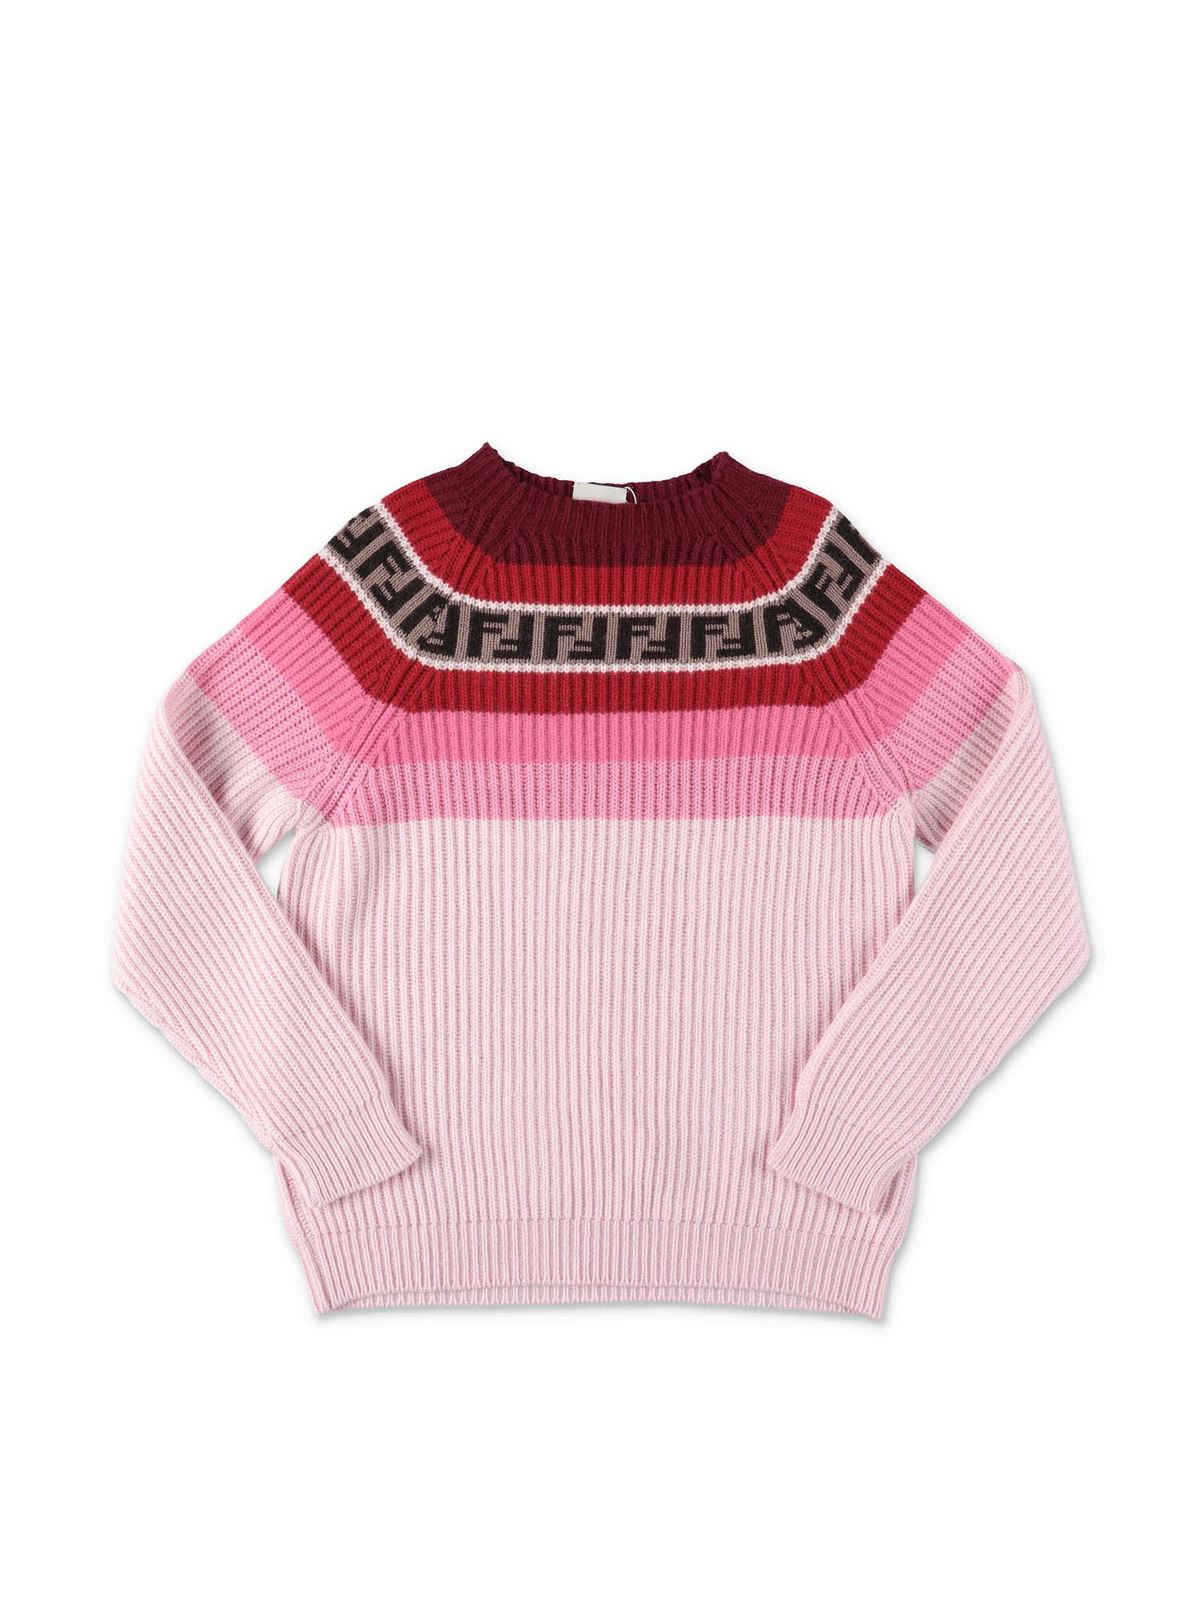 FENDI JR PINK SWEATER WITH STRIPES